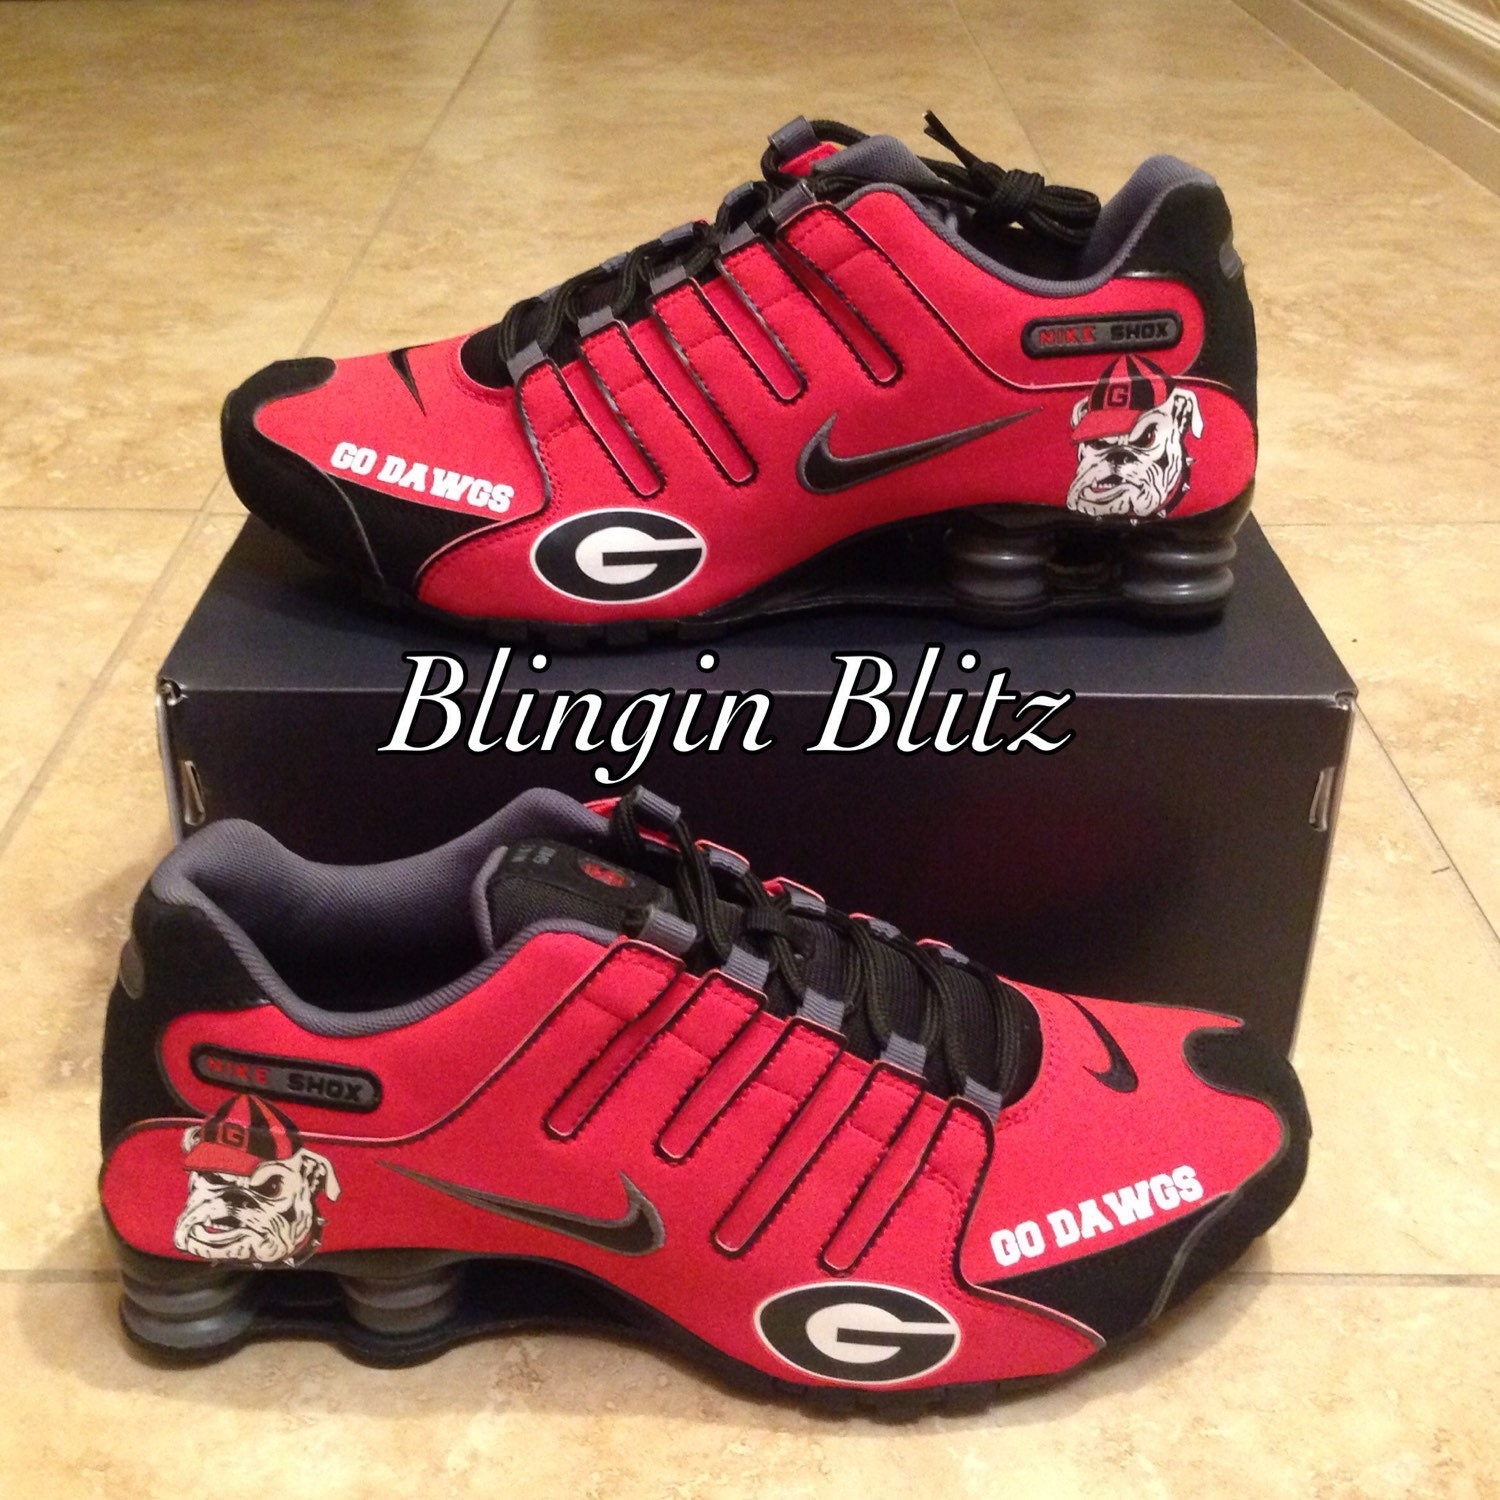 georgia bulldog nike shoes mens georgia bulldogs shox by blinginblitz on etsy 7504